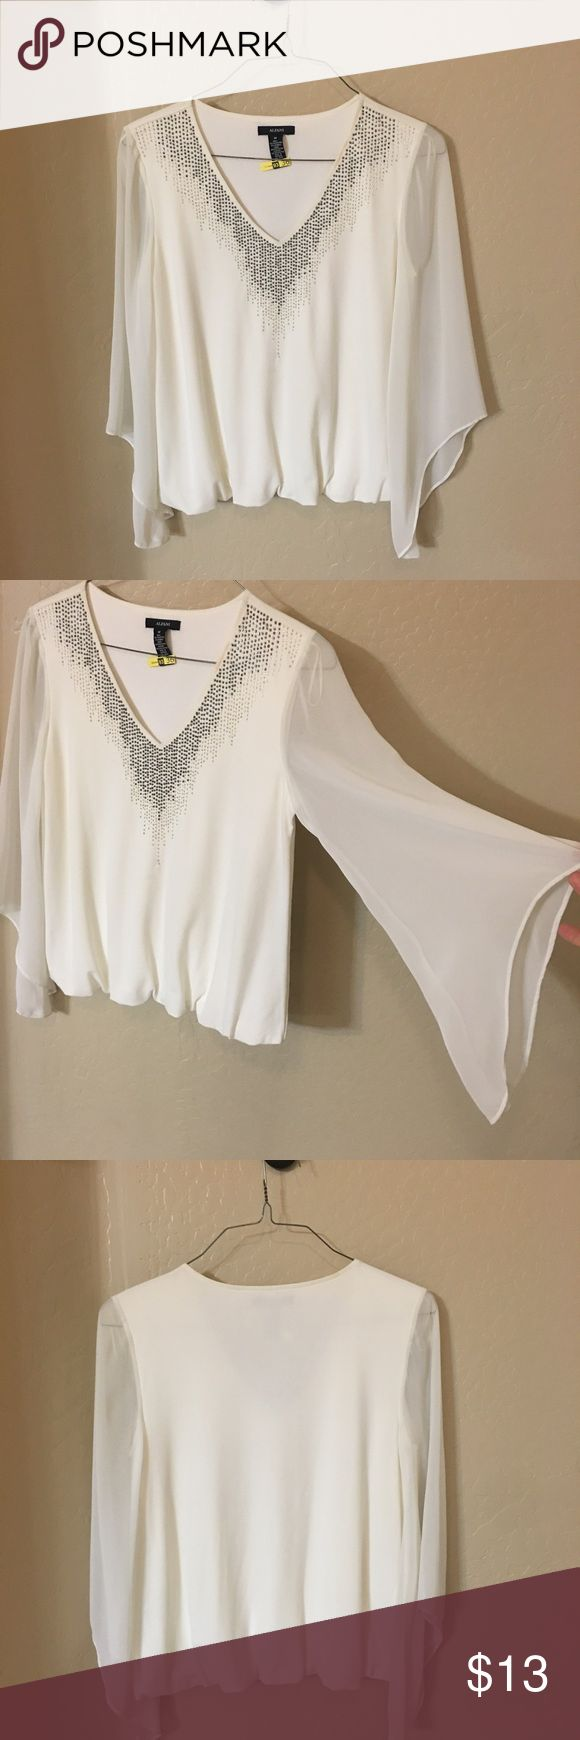 White dress top with beading White v neck dress too with drape sleeve and beading around neckline. Only worn once Alfani Tops Blouses